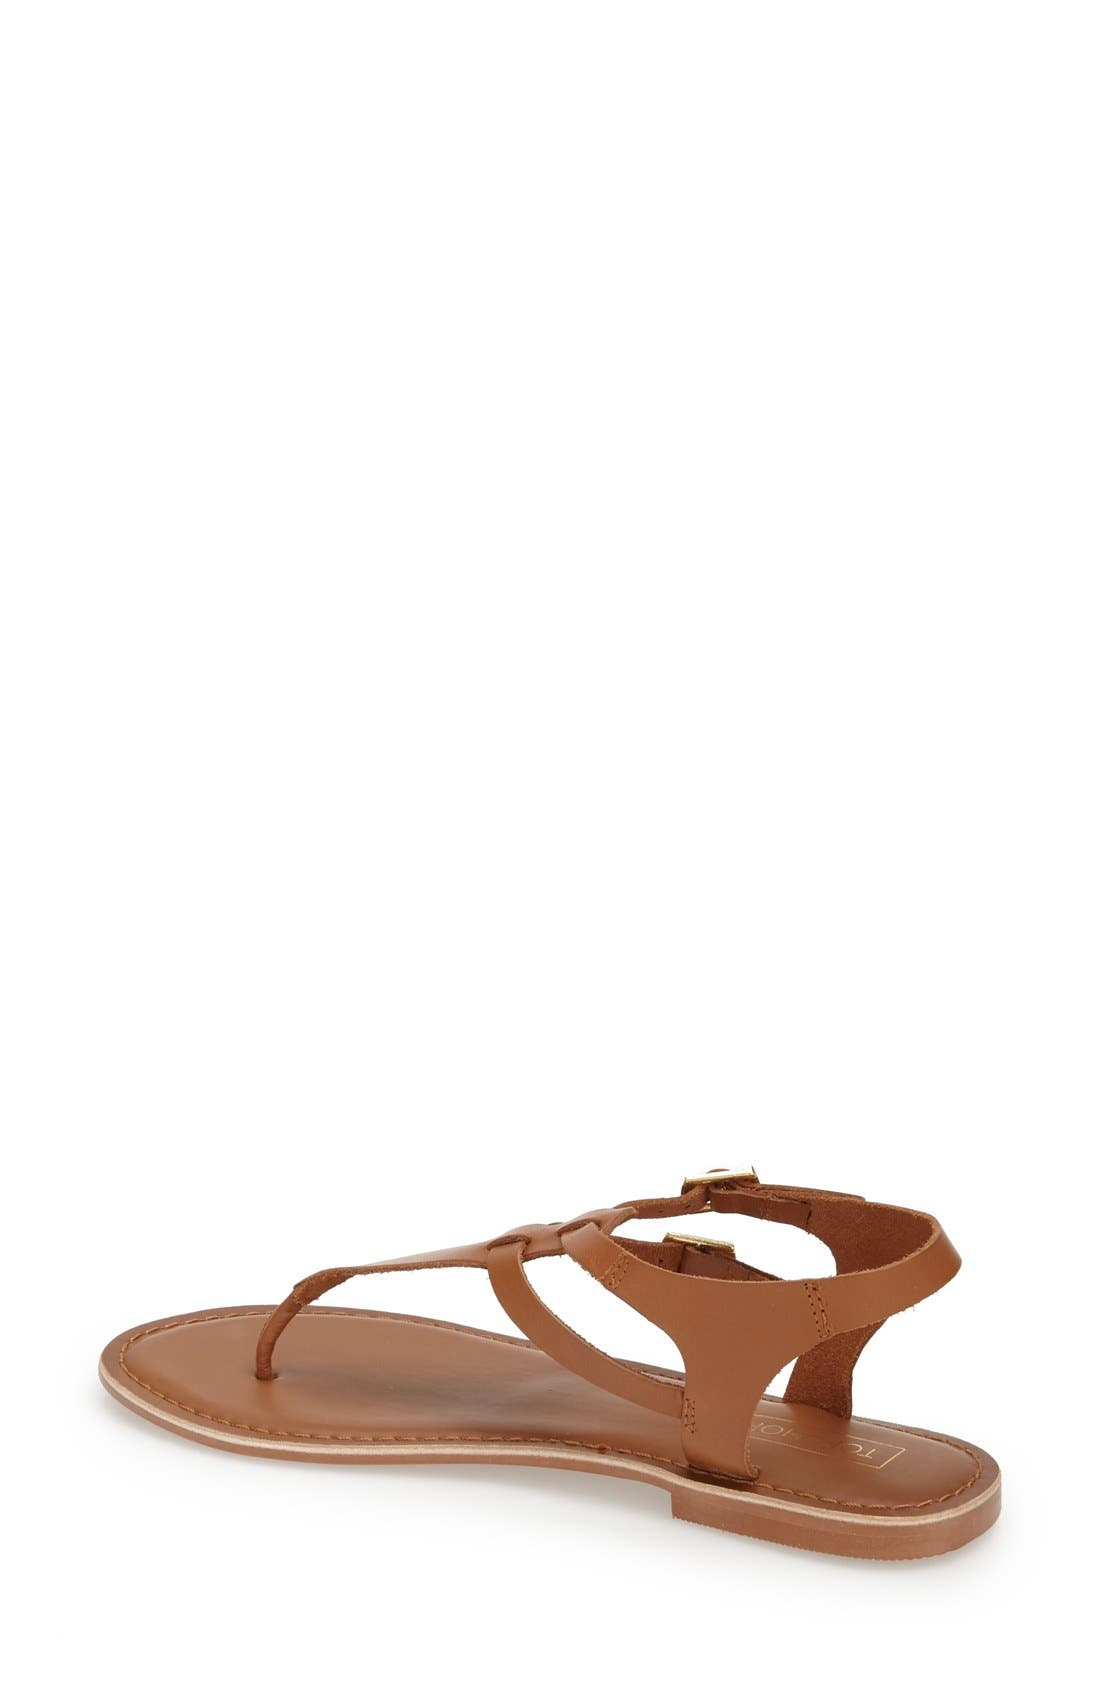 Alternate Image 2  - Topshop 'Harbour' Strappy Leather Thong Sandal (Women)